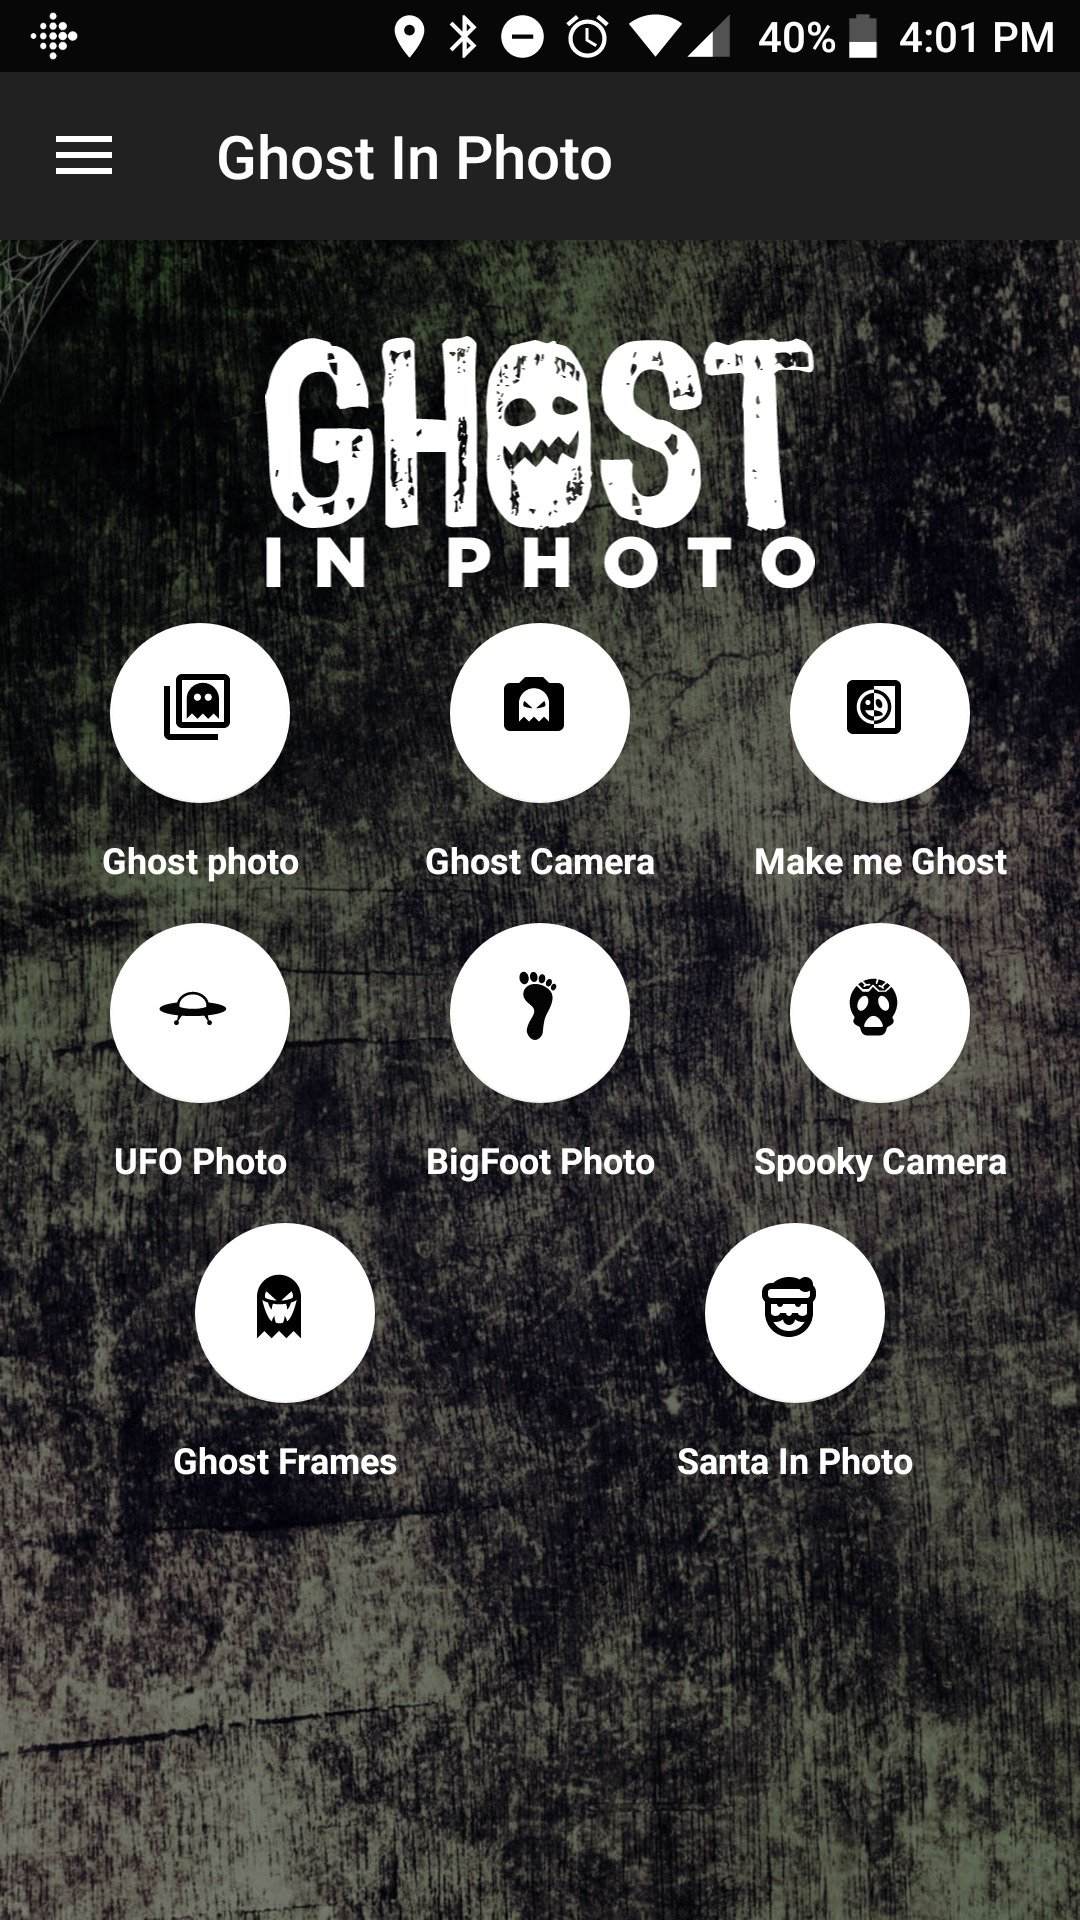 Ghost In Photo Android image 4